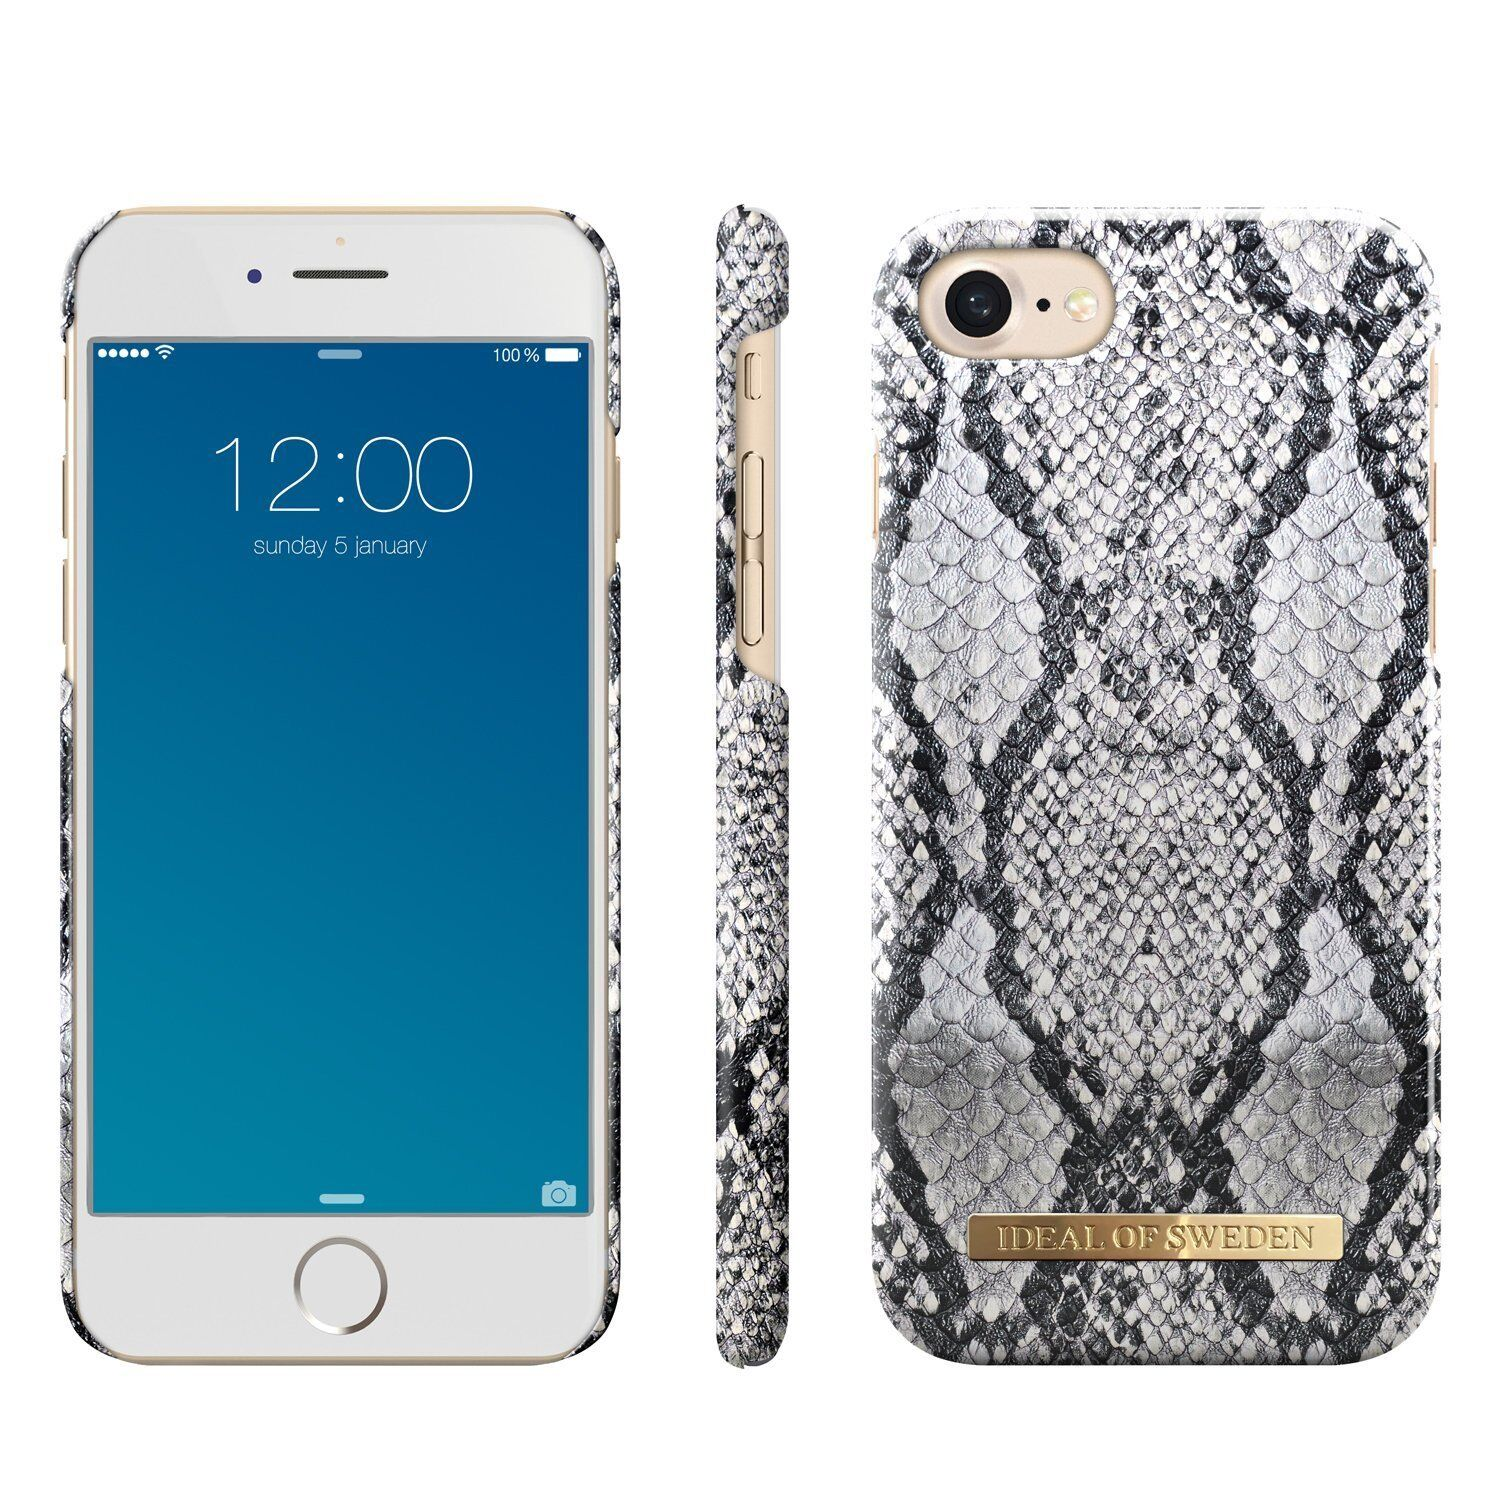 hot sale online 13dfc a7f37 Details about iDeal of Sweden iPhone 7 iPhone 8 Magnet Hard Snap Cover Case  Python Snake Skin